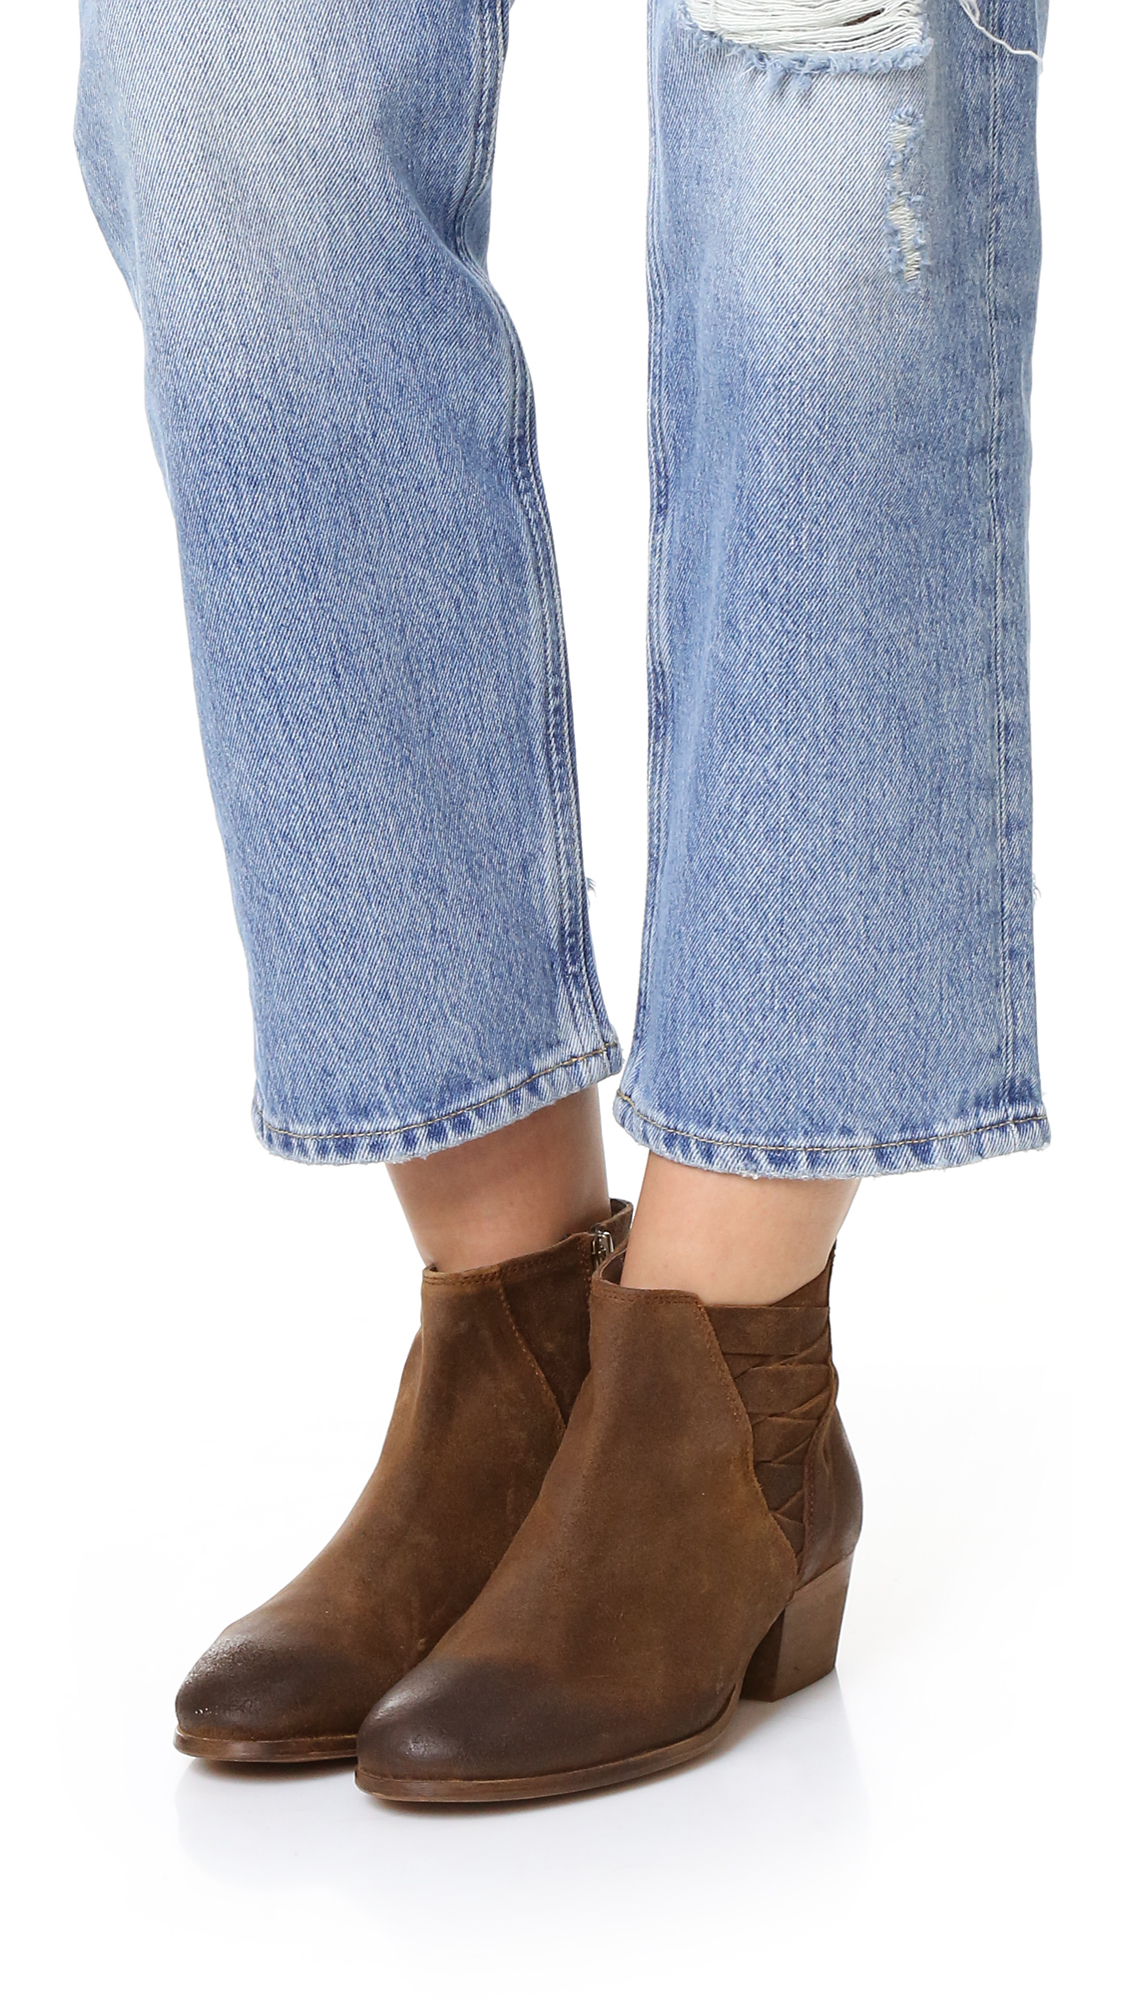 H by Hudson Suede Ankti Booties in Tobacco (Brown)